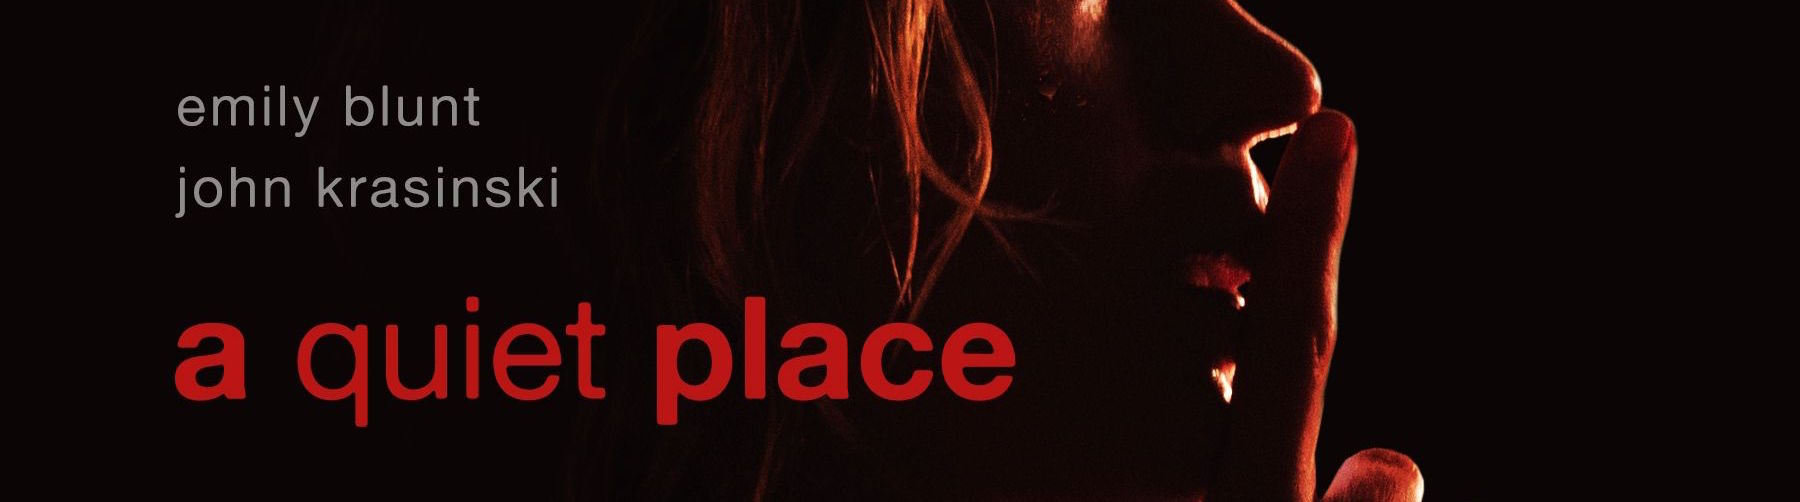 A Quiet Place Recension GGGG+